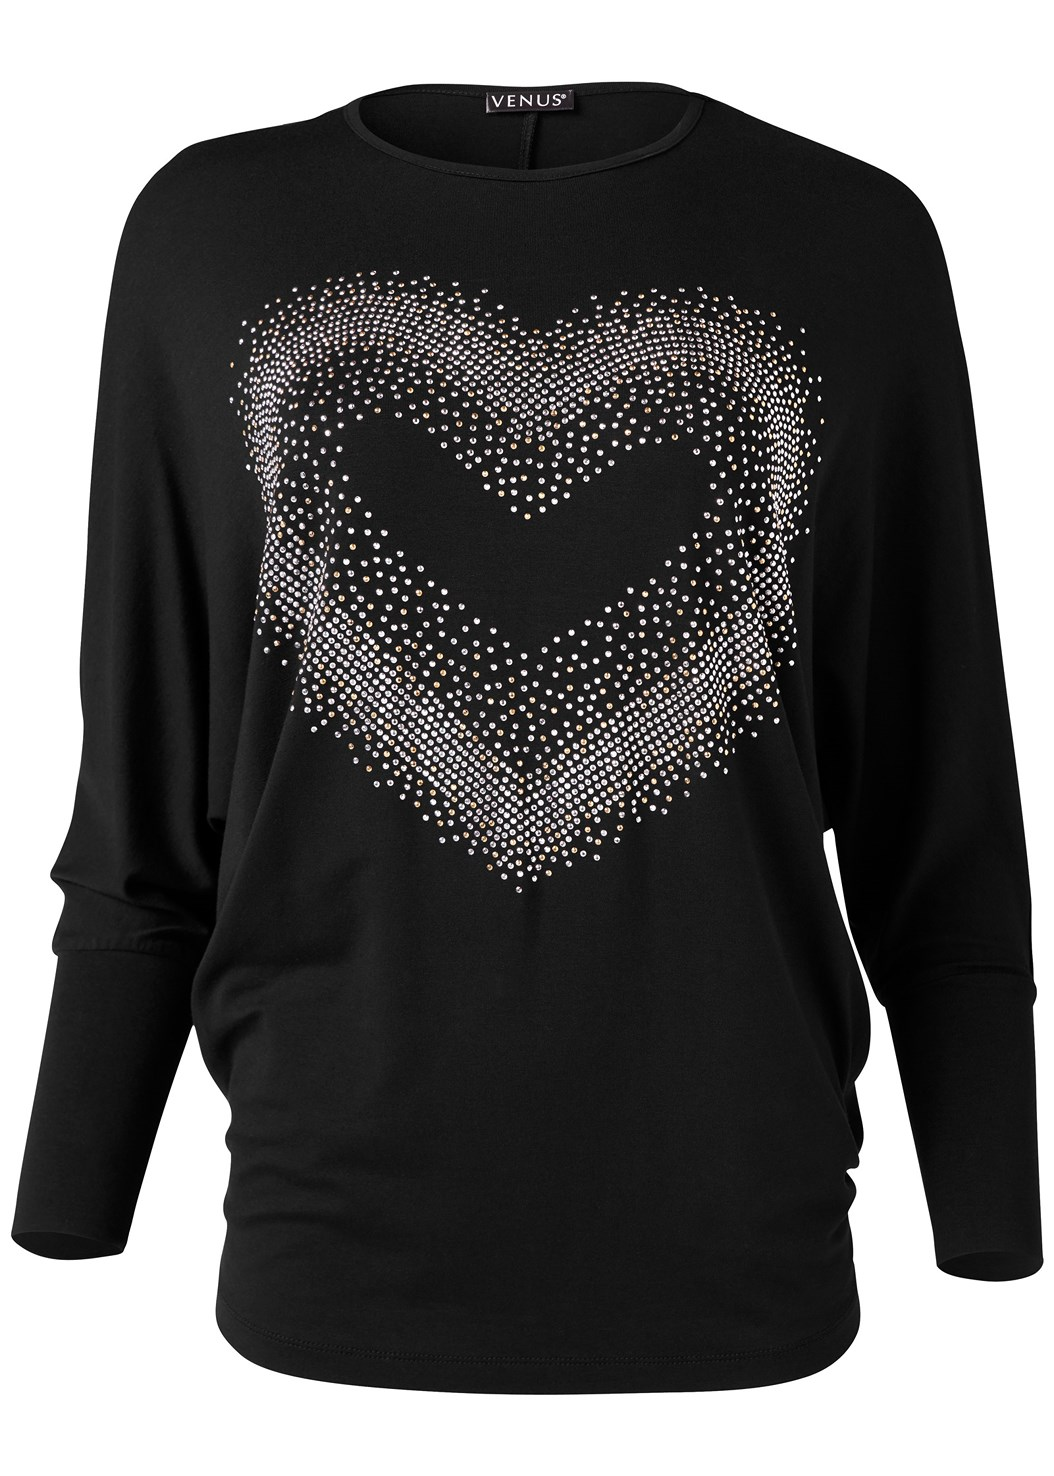 Embellished Heart Tee,Ripped Bum Lifter Jeans,Stud Detail Boots